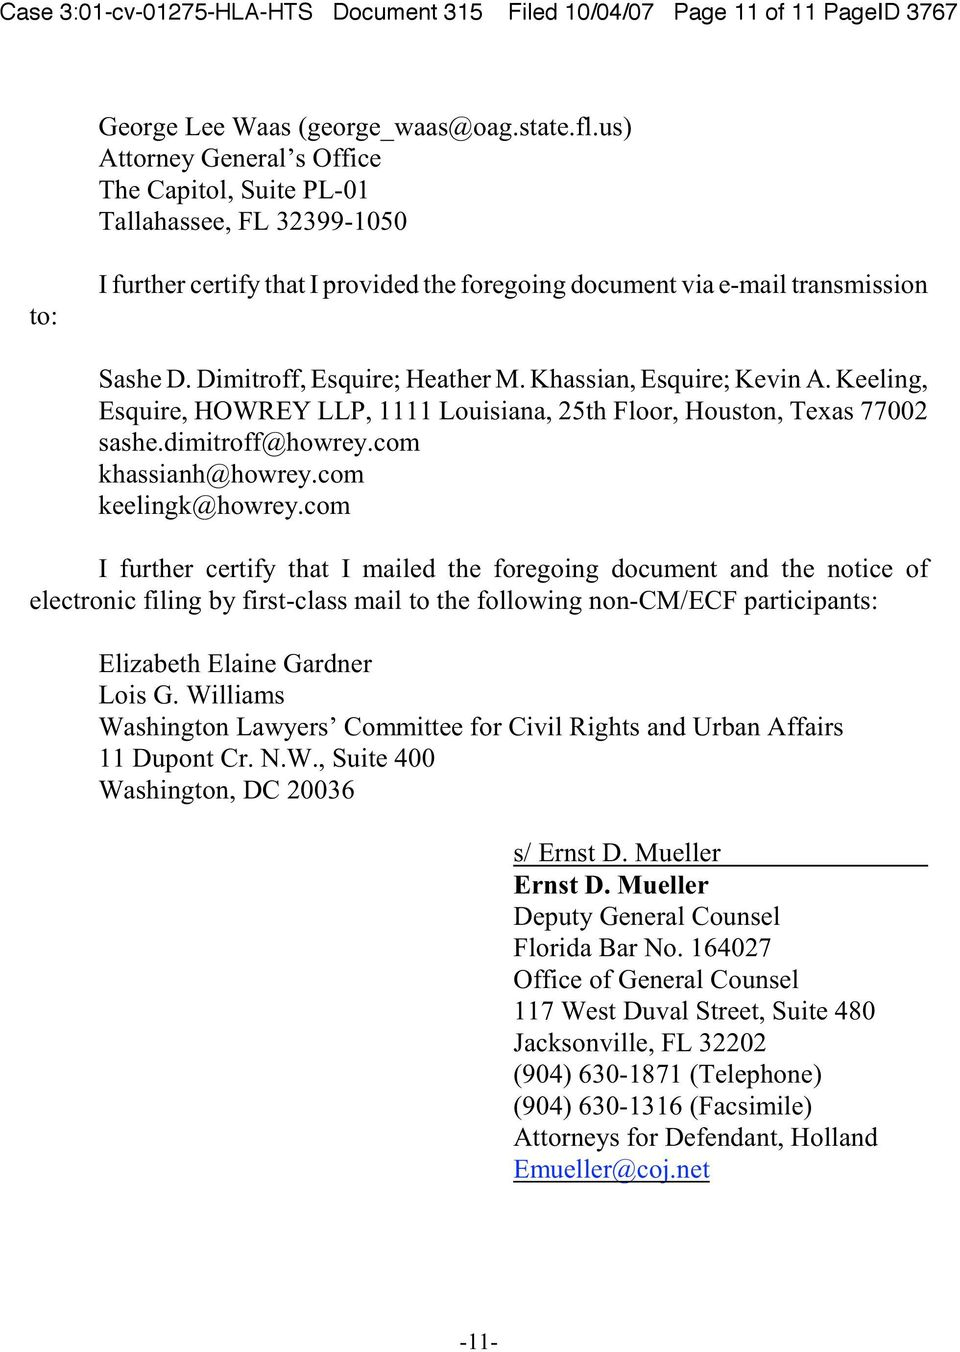 Dimitroff, Esquire; Heather M. Khassian, Esquire; Kevin A. Keeling, Esquire, HOWREY LLP, 1111 Louisiana, 25th Floor, Houston, Texas 77002 sashe.dimitroff@howrey.com khassianh@howrey.